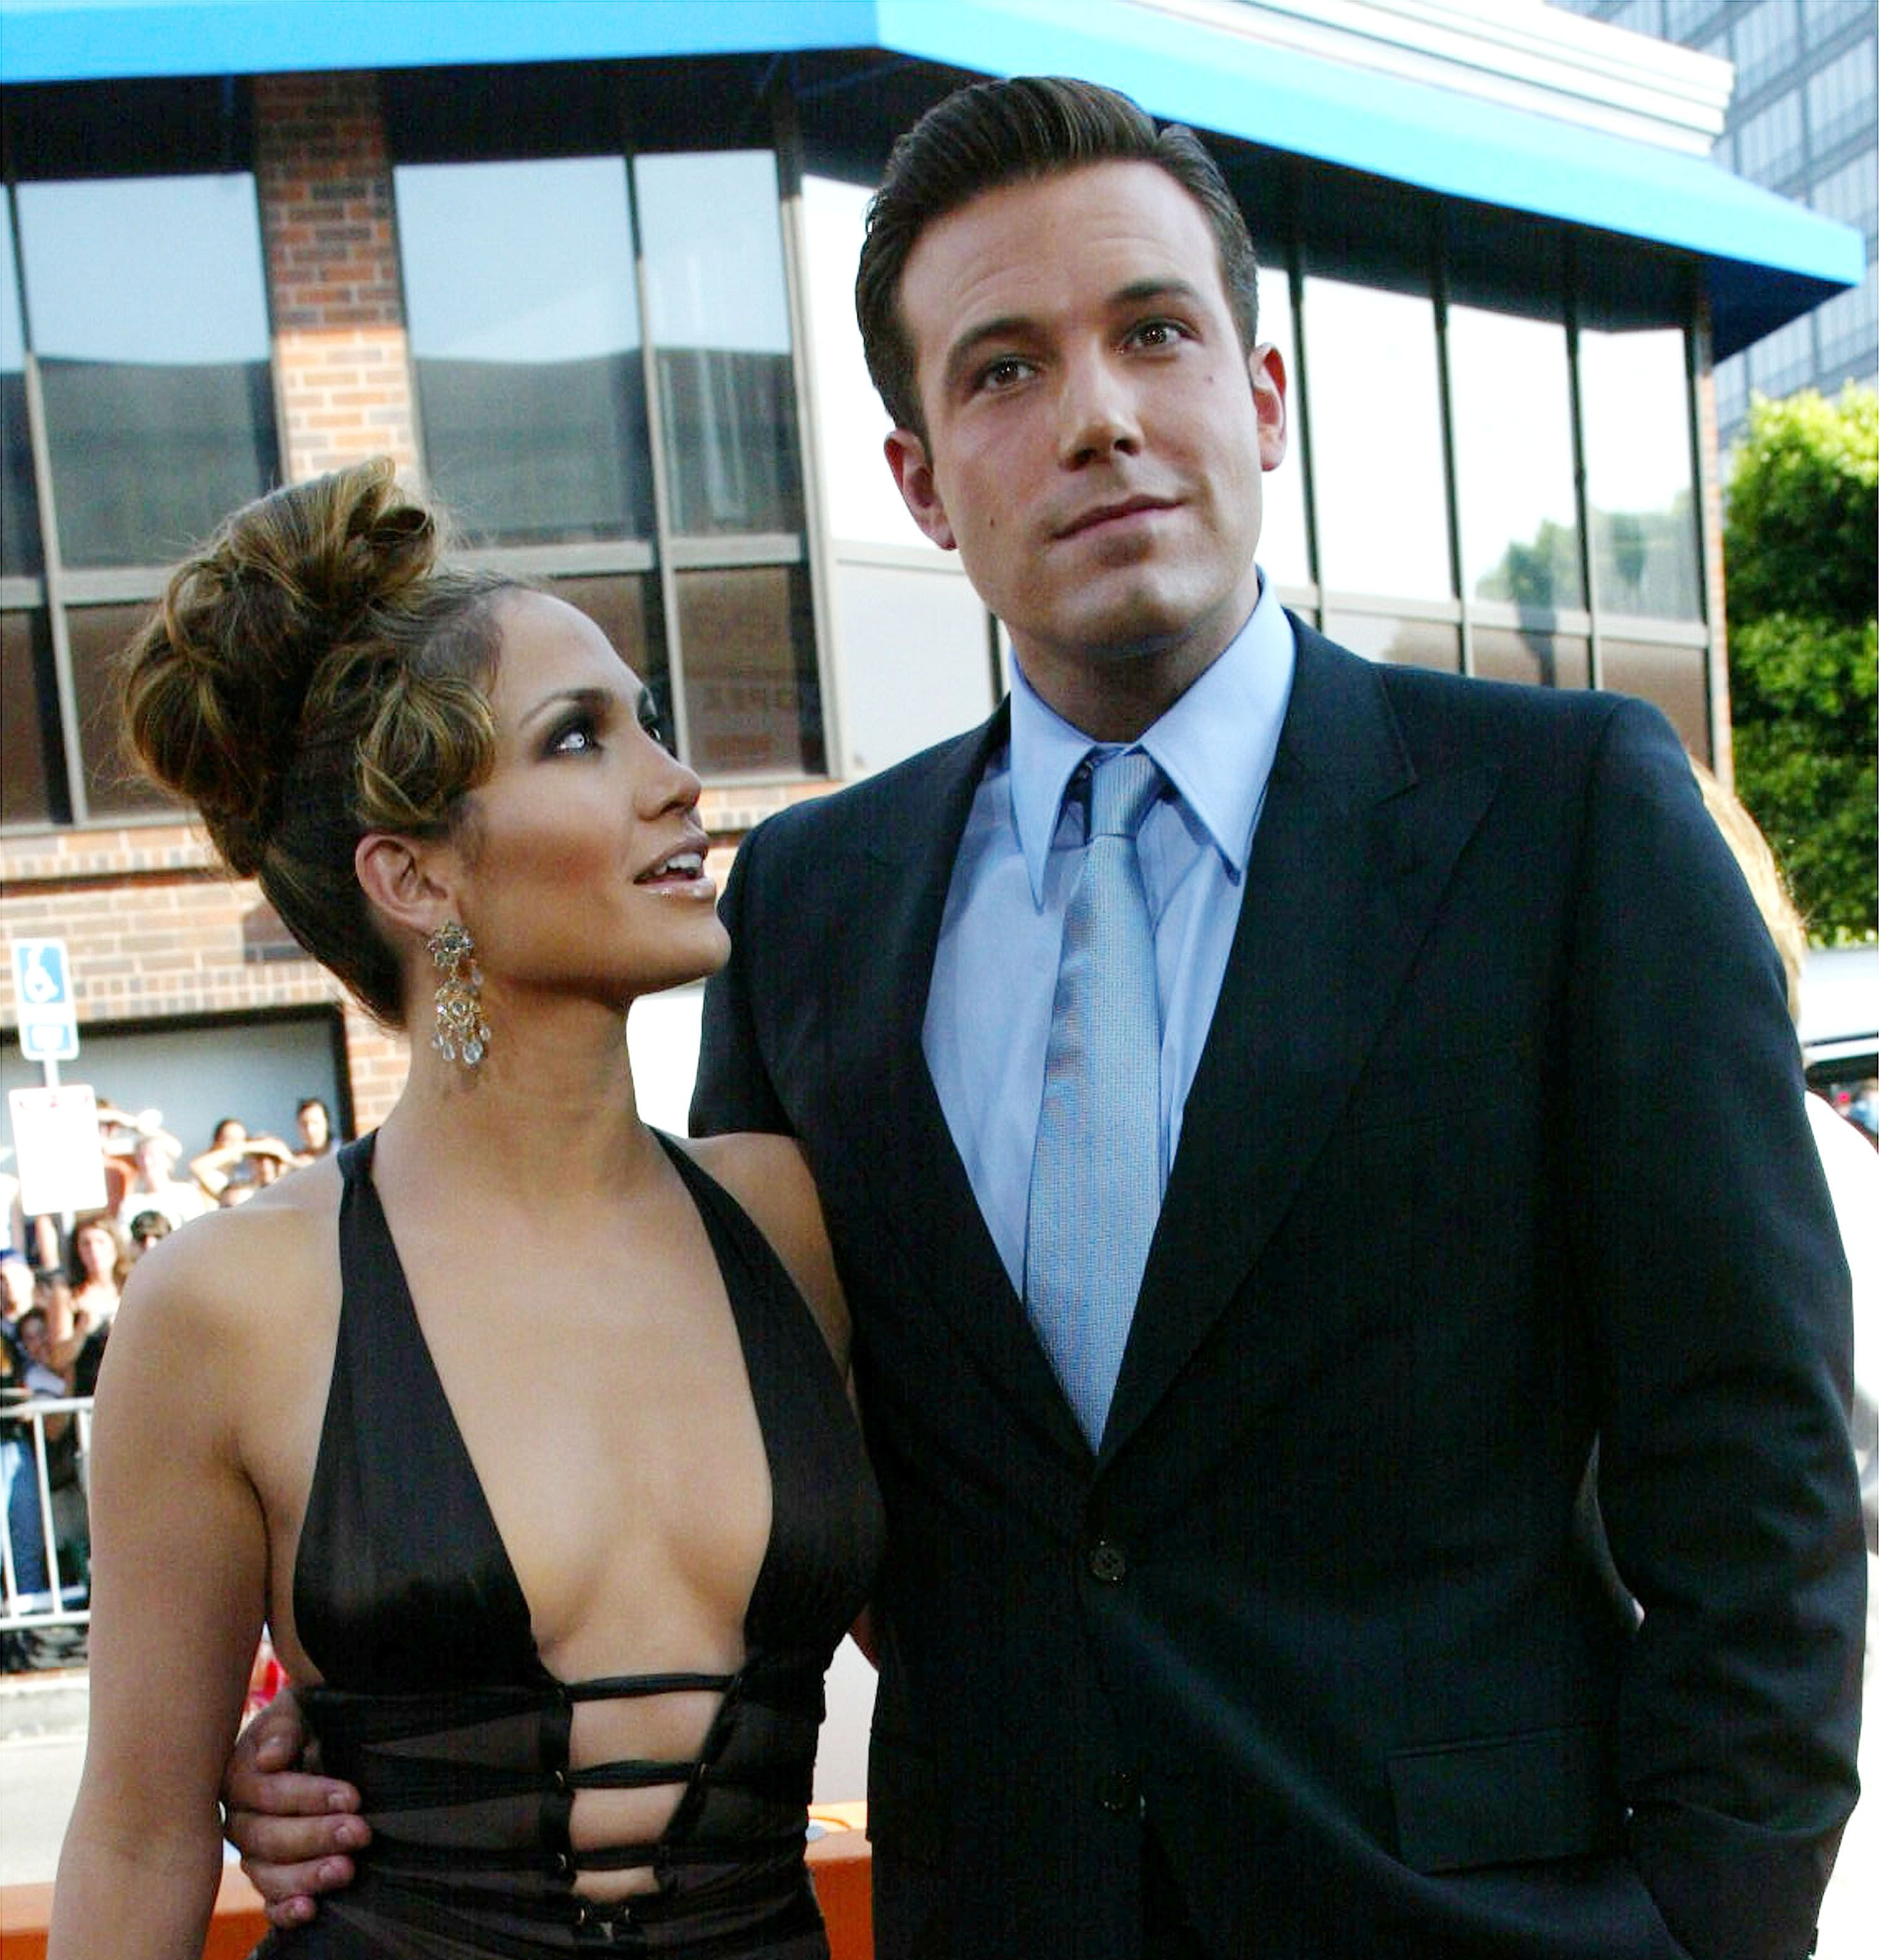 """Jennifer Lopez and Ben Affleck at the premiere of the film """"Gigli"""" on July 27, 2003, in Westwood, California   Photo: Frederick M. Brown/Getty Images"""